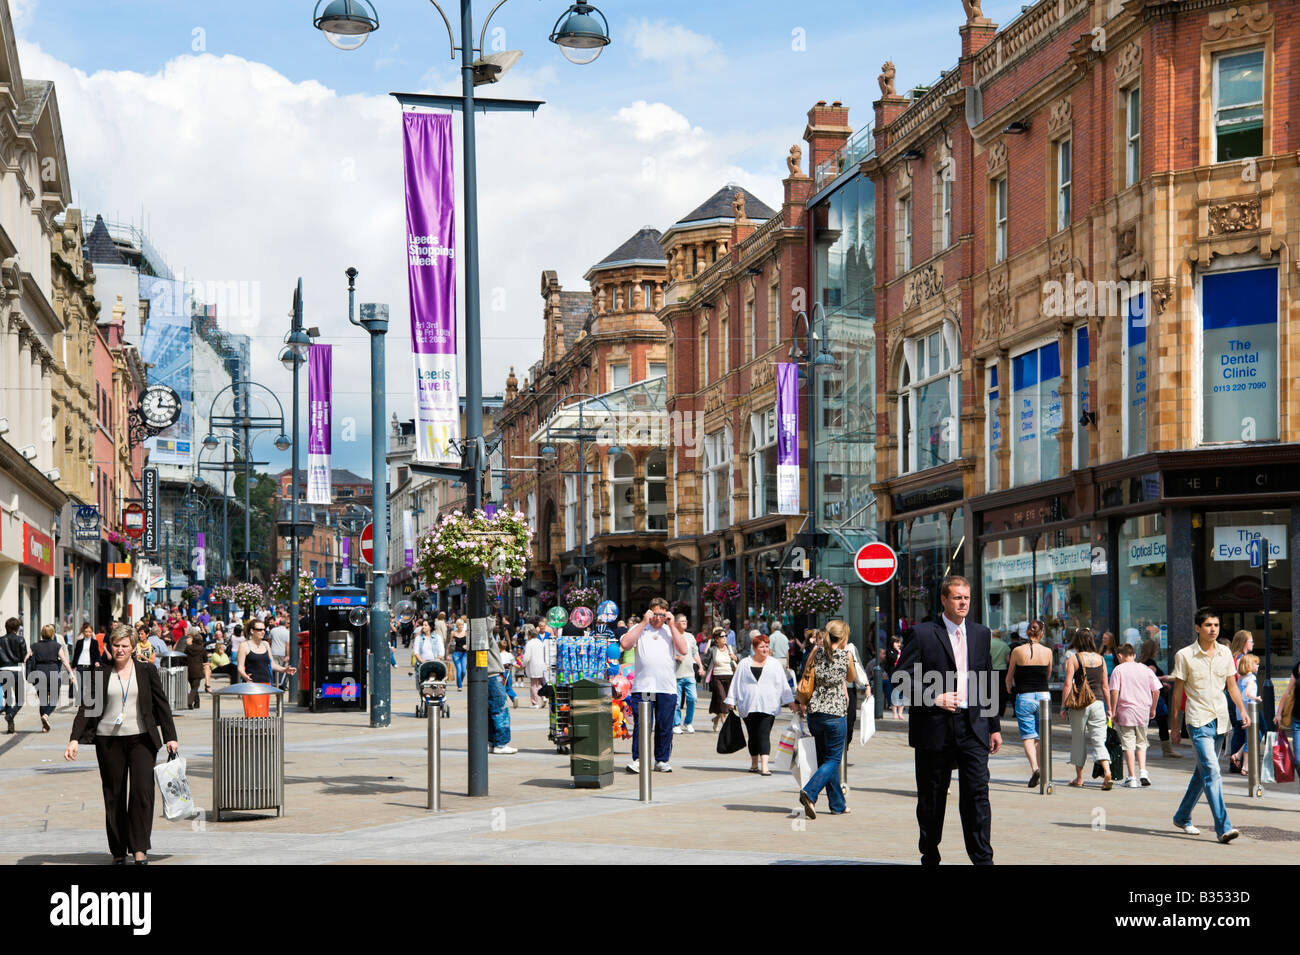 Briggate (the main shopping street in the city centre), Leeds, West Yorkshire, England - Stock Image